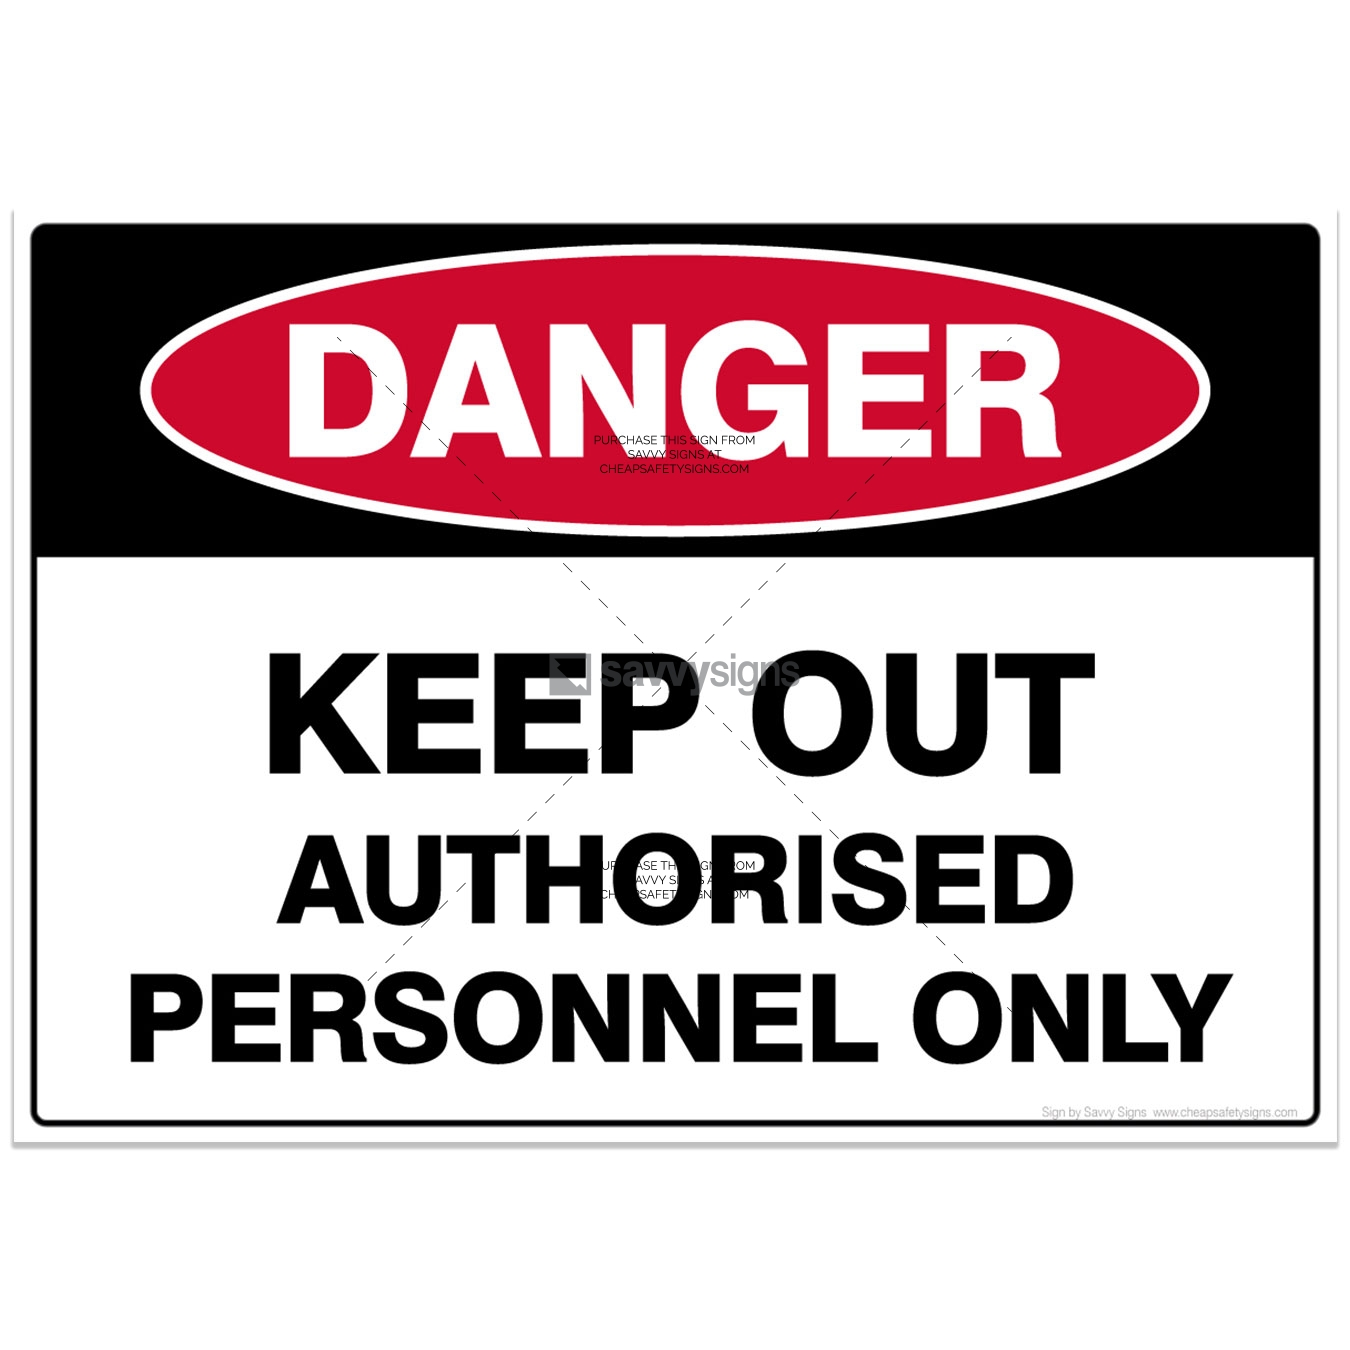 SSDAN3053-DANGER-Workplace-Safety-Signs_Savvy-Signs_v4.1